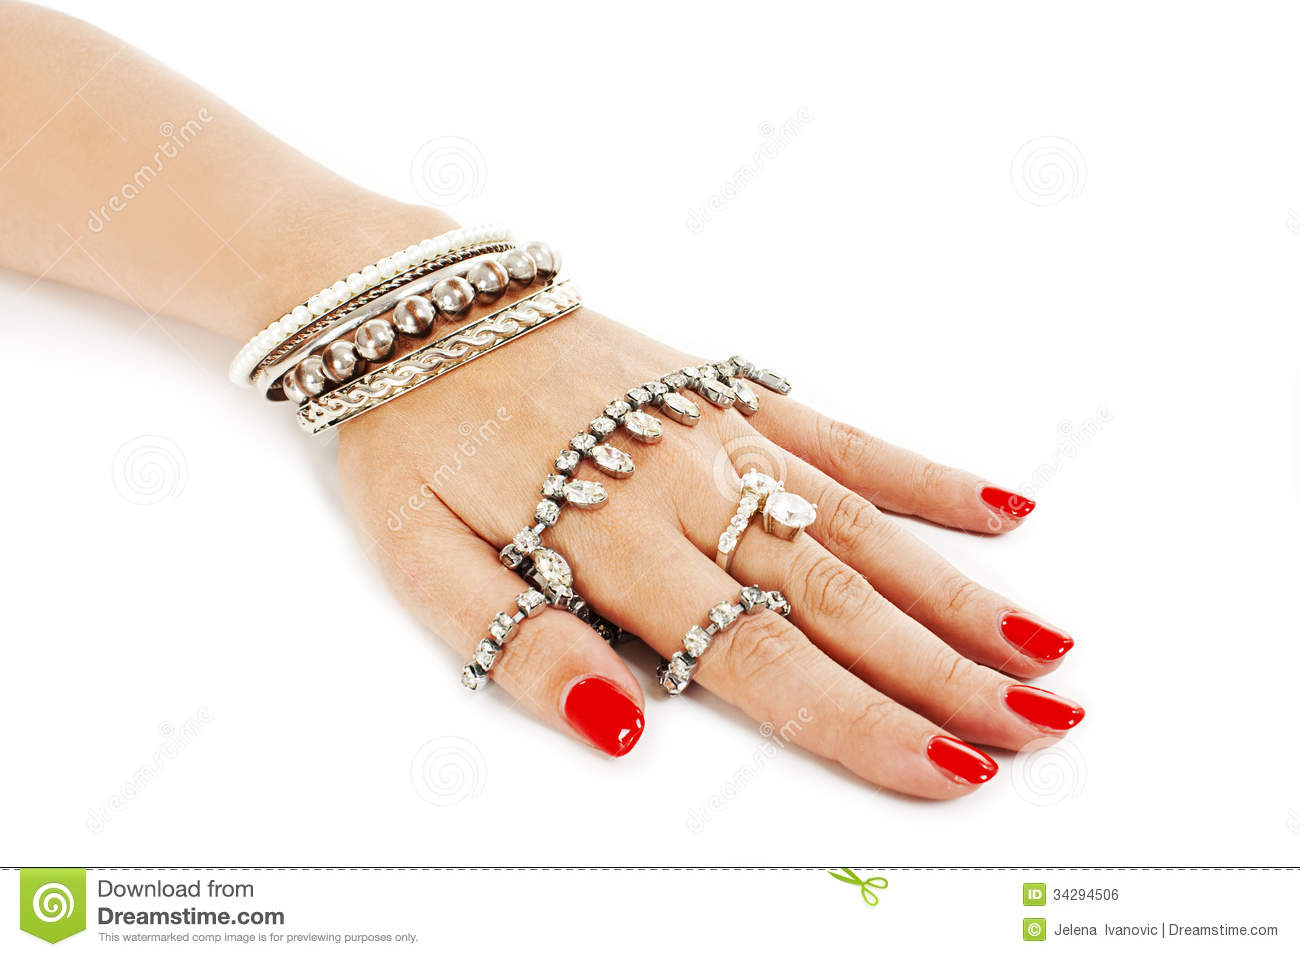 Woman Hand With Silver Bangles Stock Photo - Image: 34294506